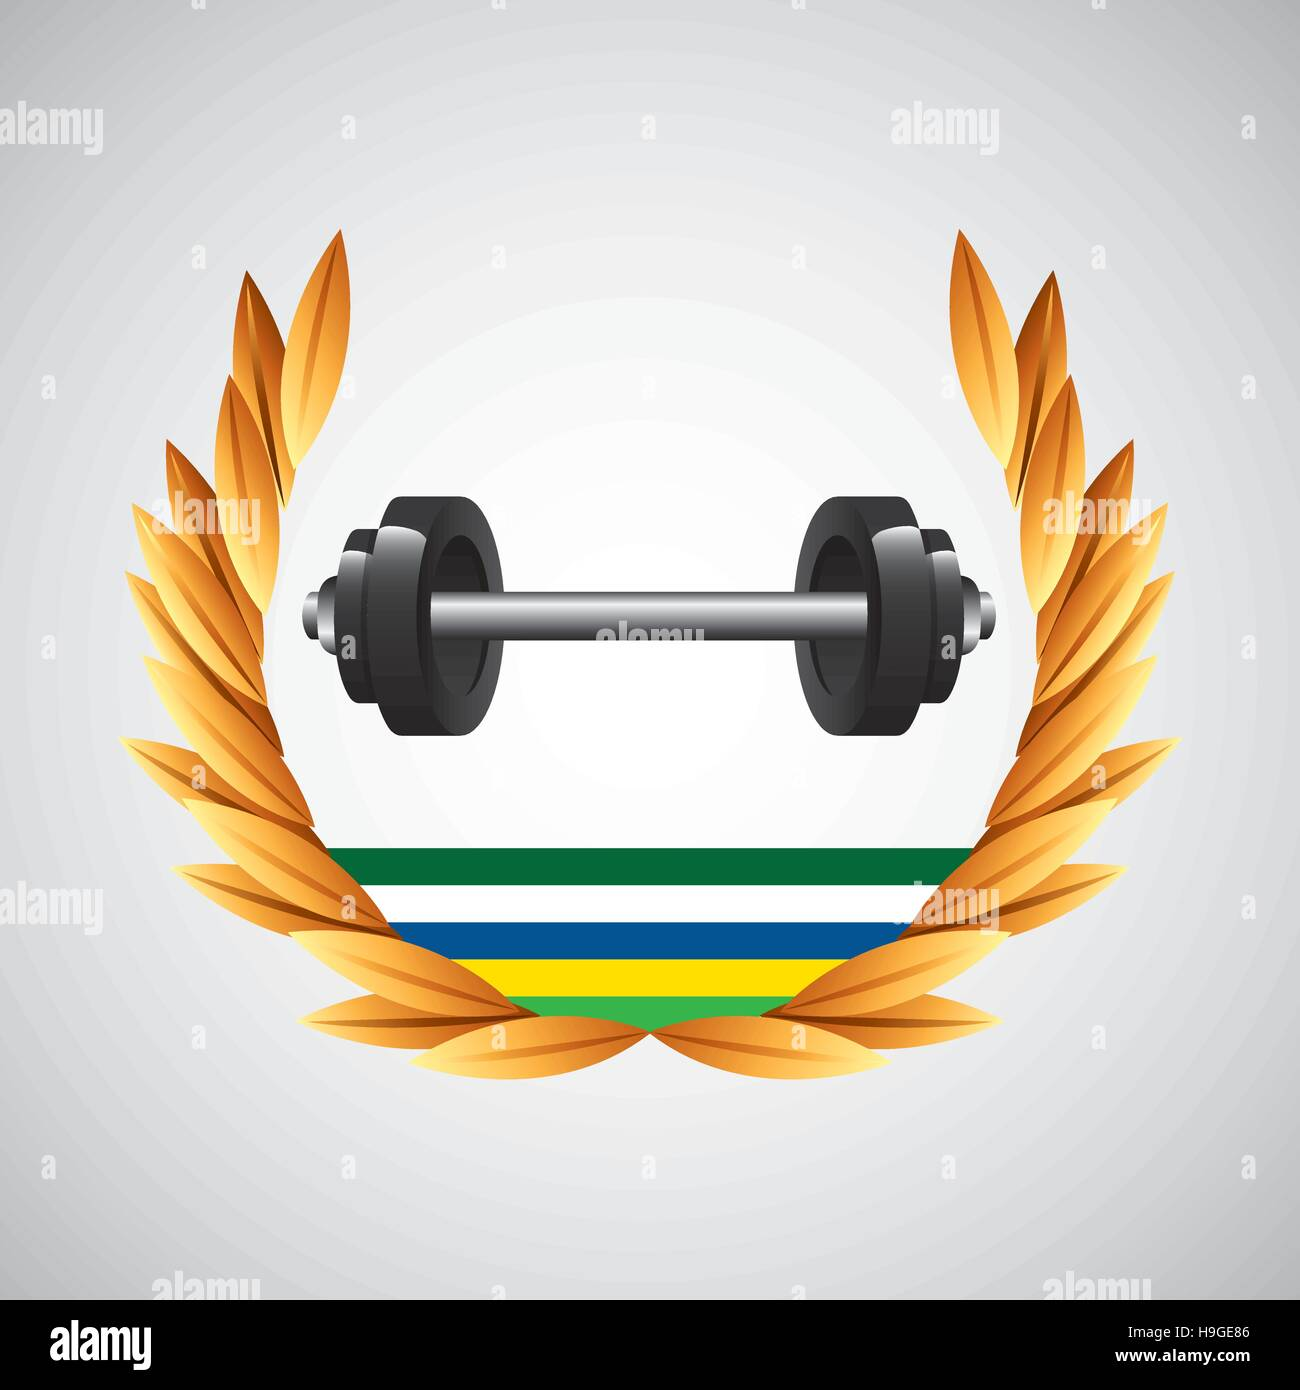 barbell weight olympic games emblem vector illustration eps 10 - Stock Vector